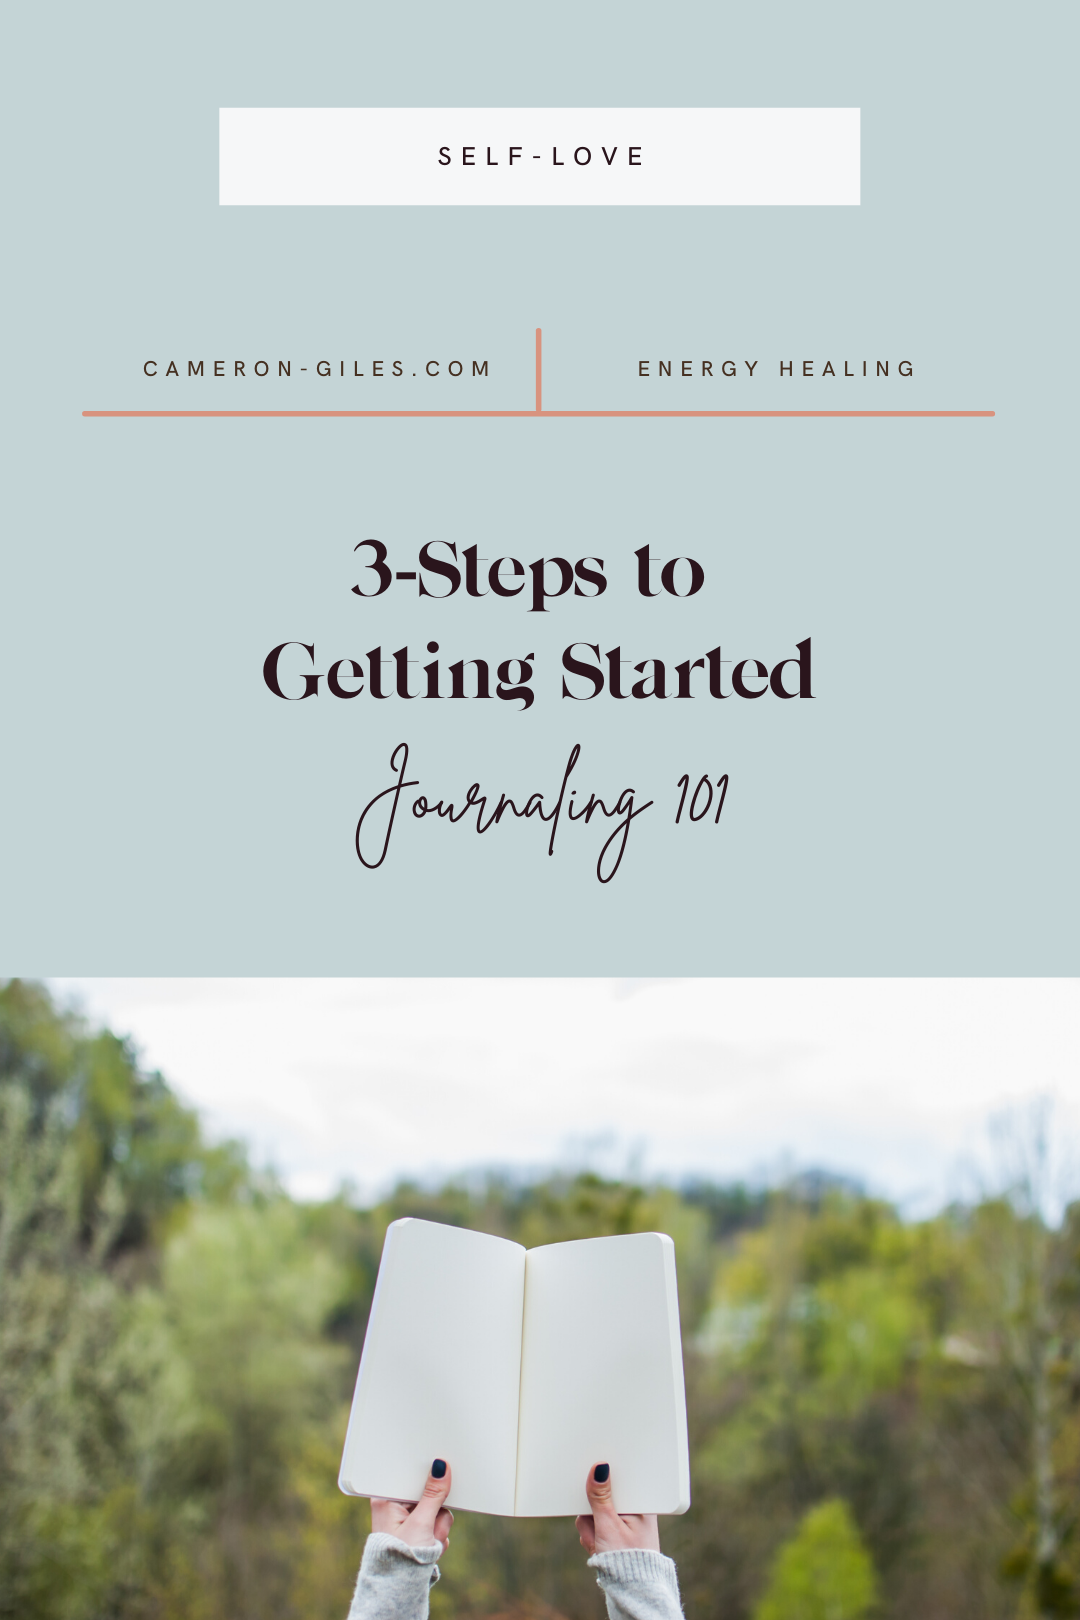 Journaling 101: 3-Steps to getting started